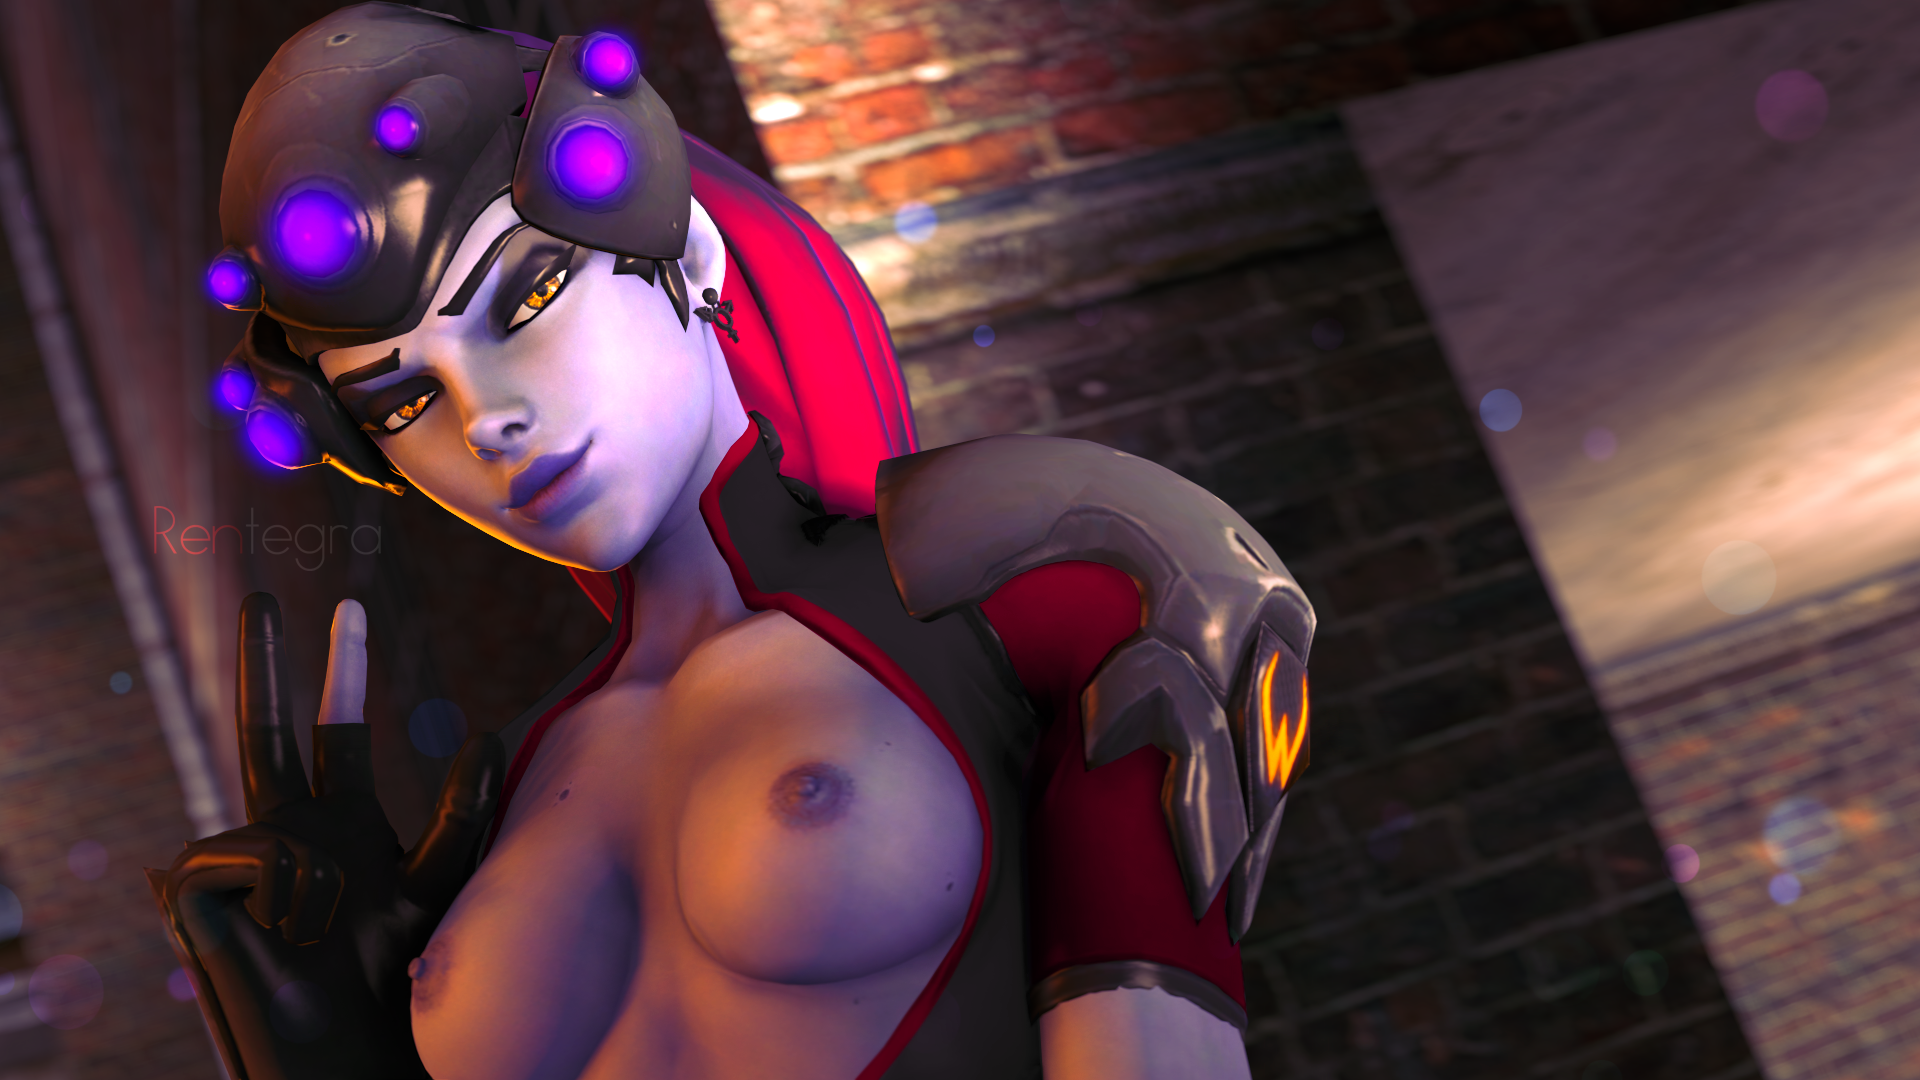 widowmaker sfm porn